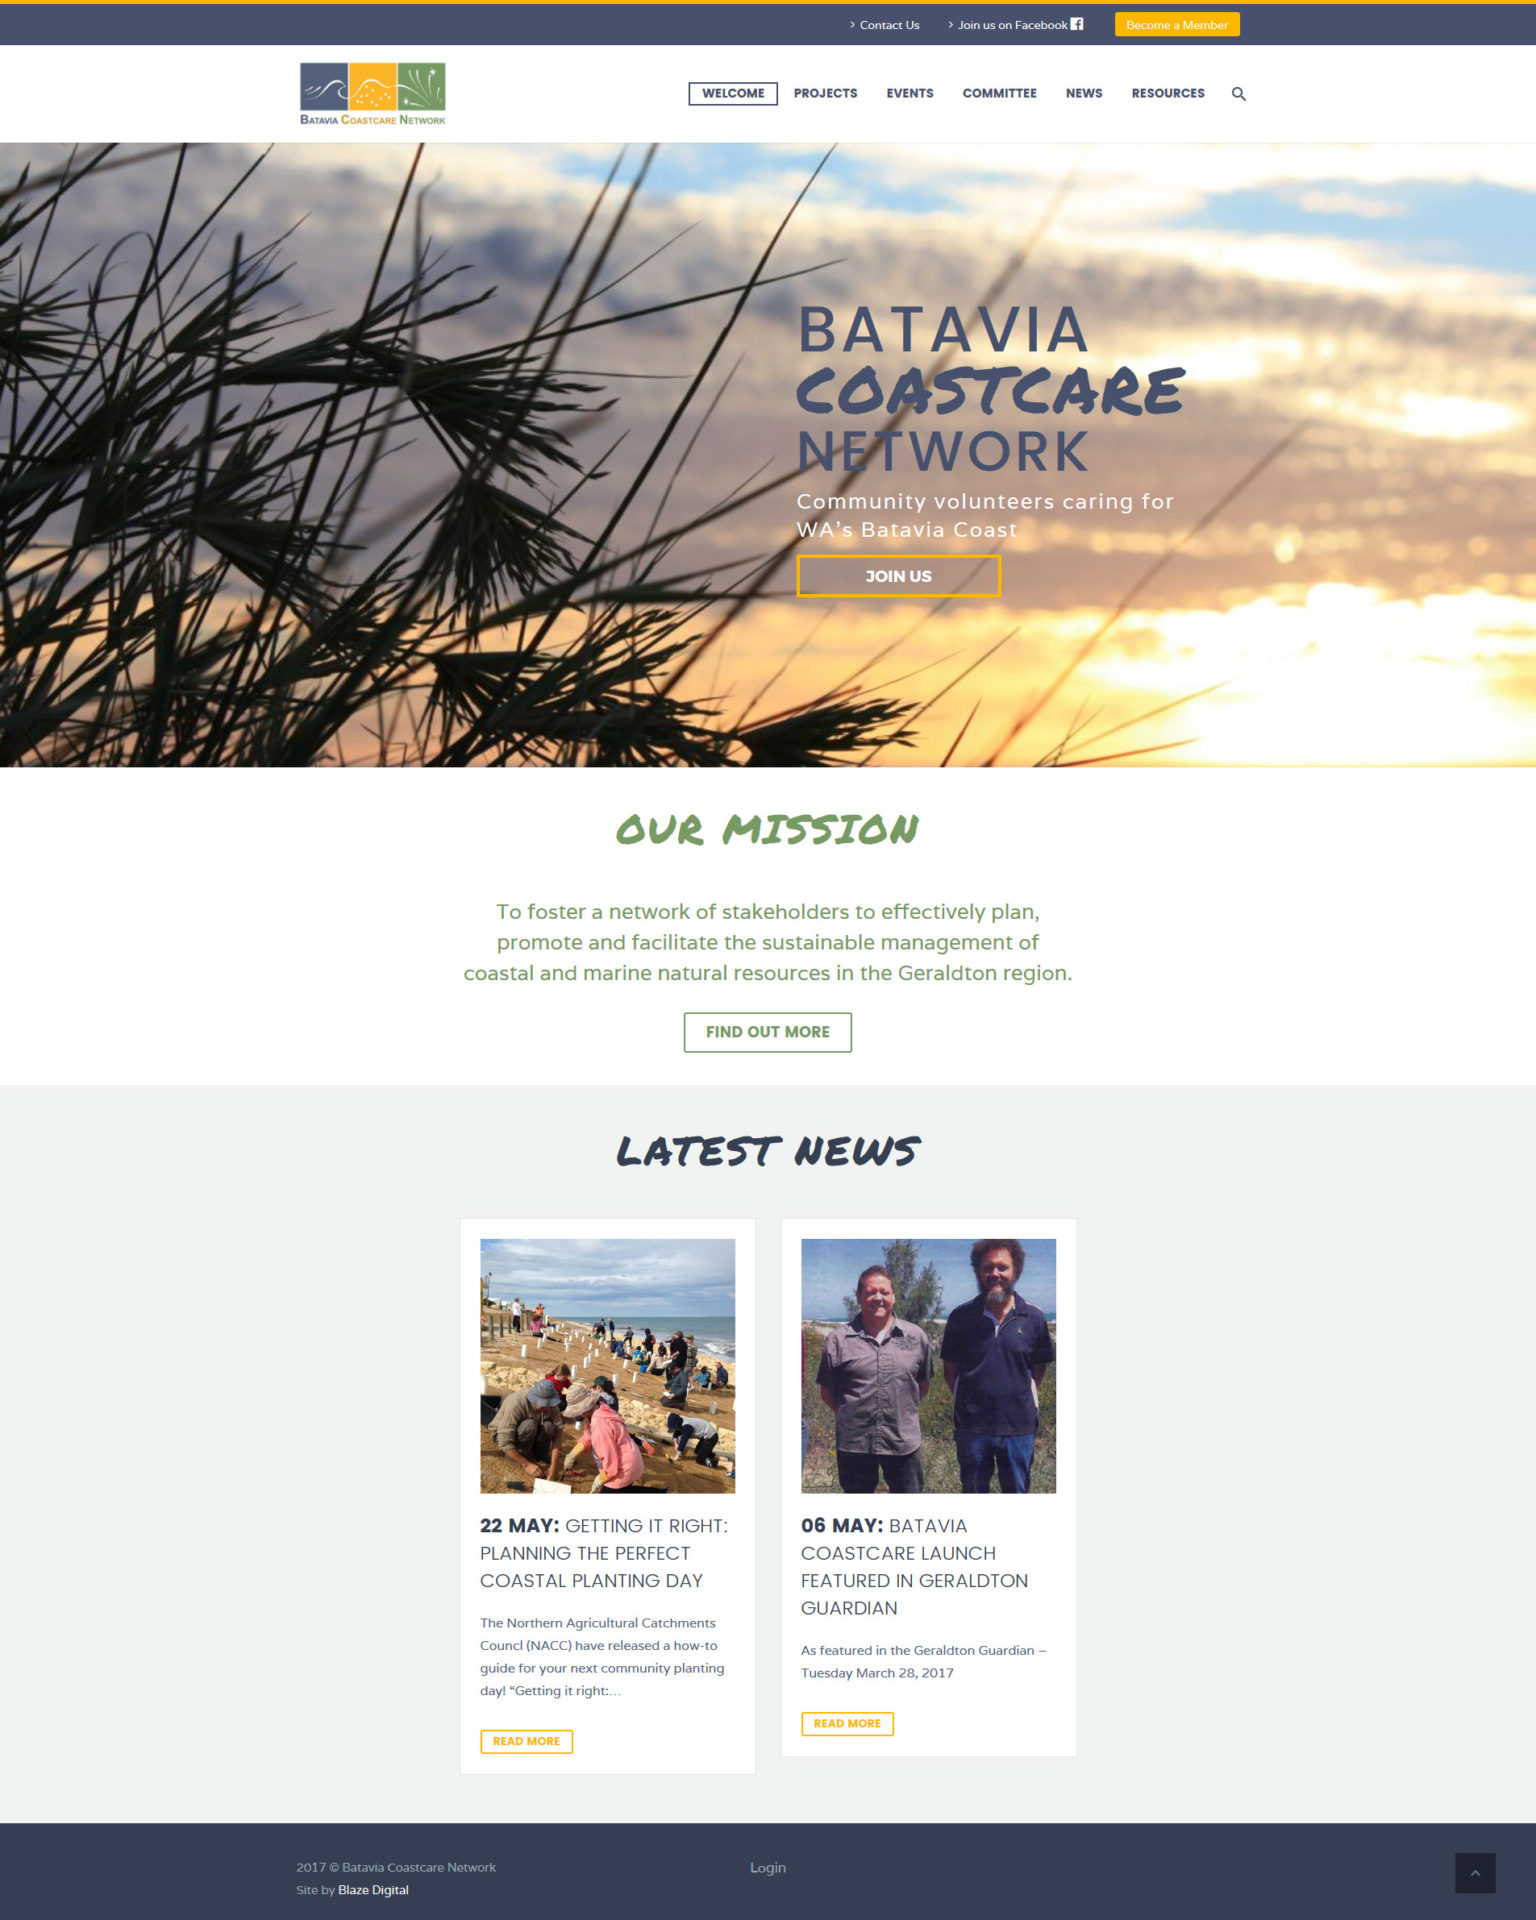 Batavia Coastcare Network Website